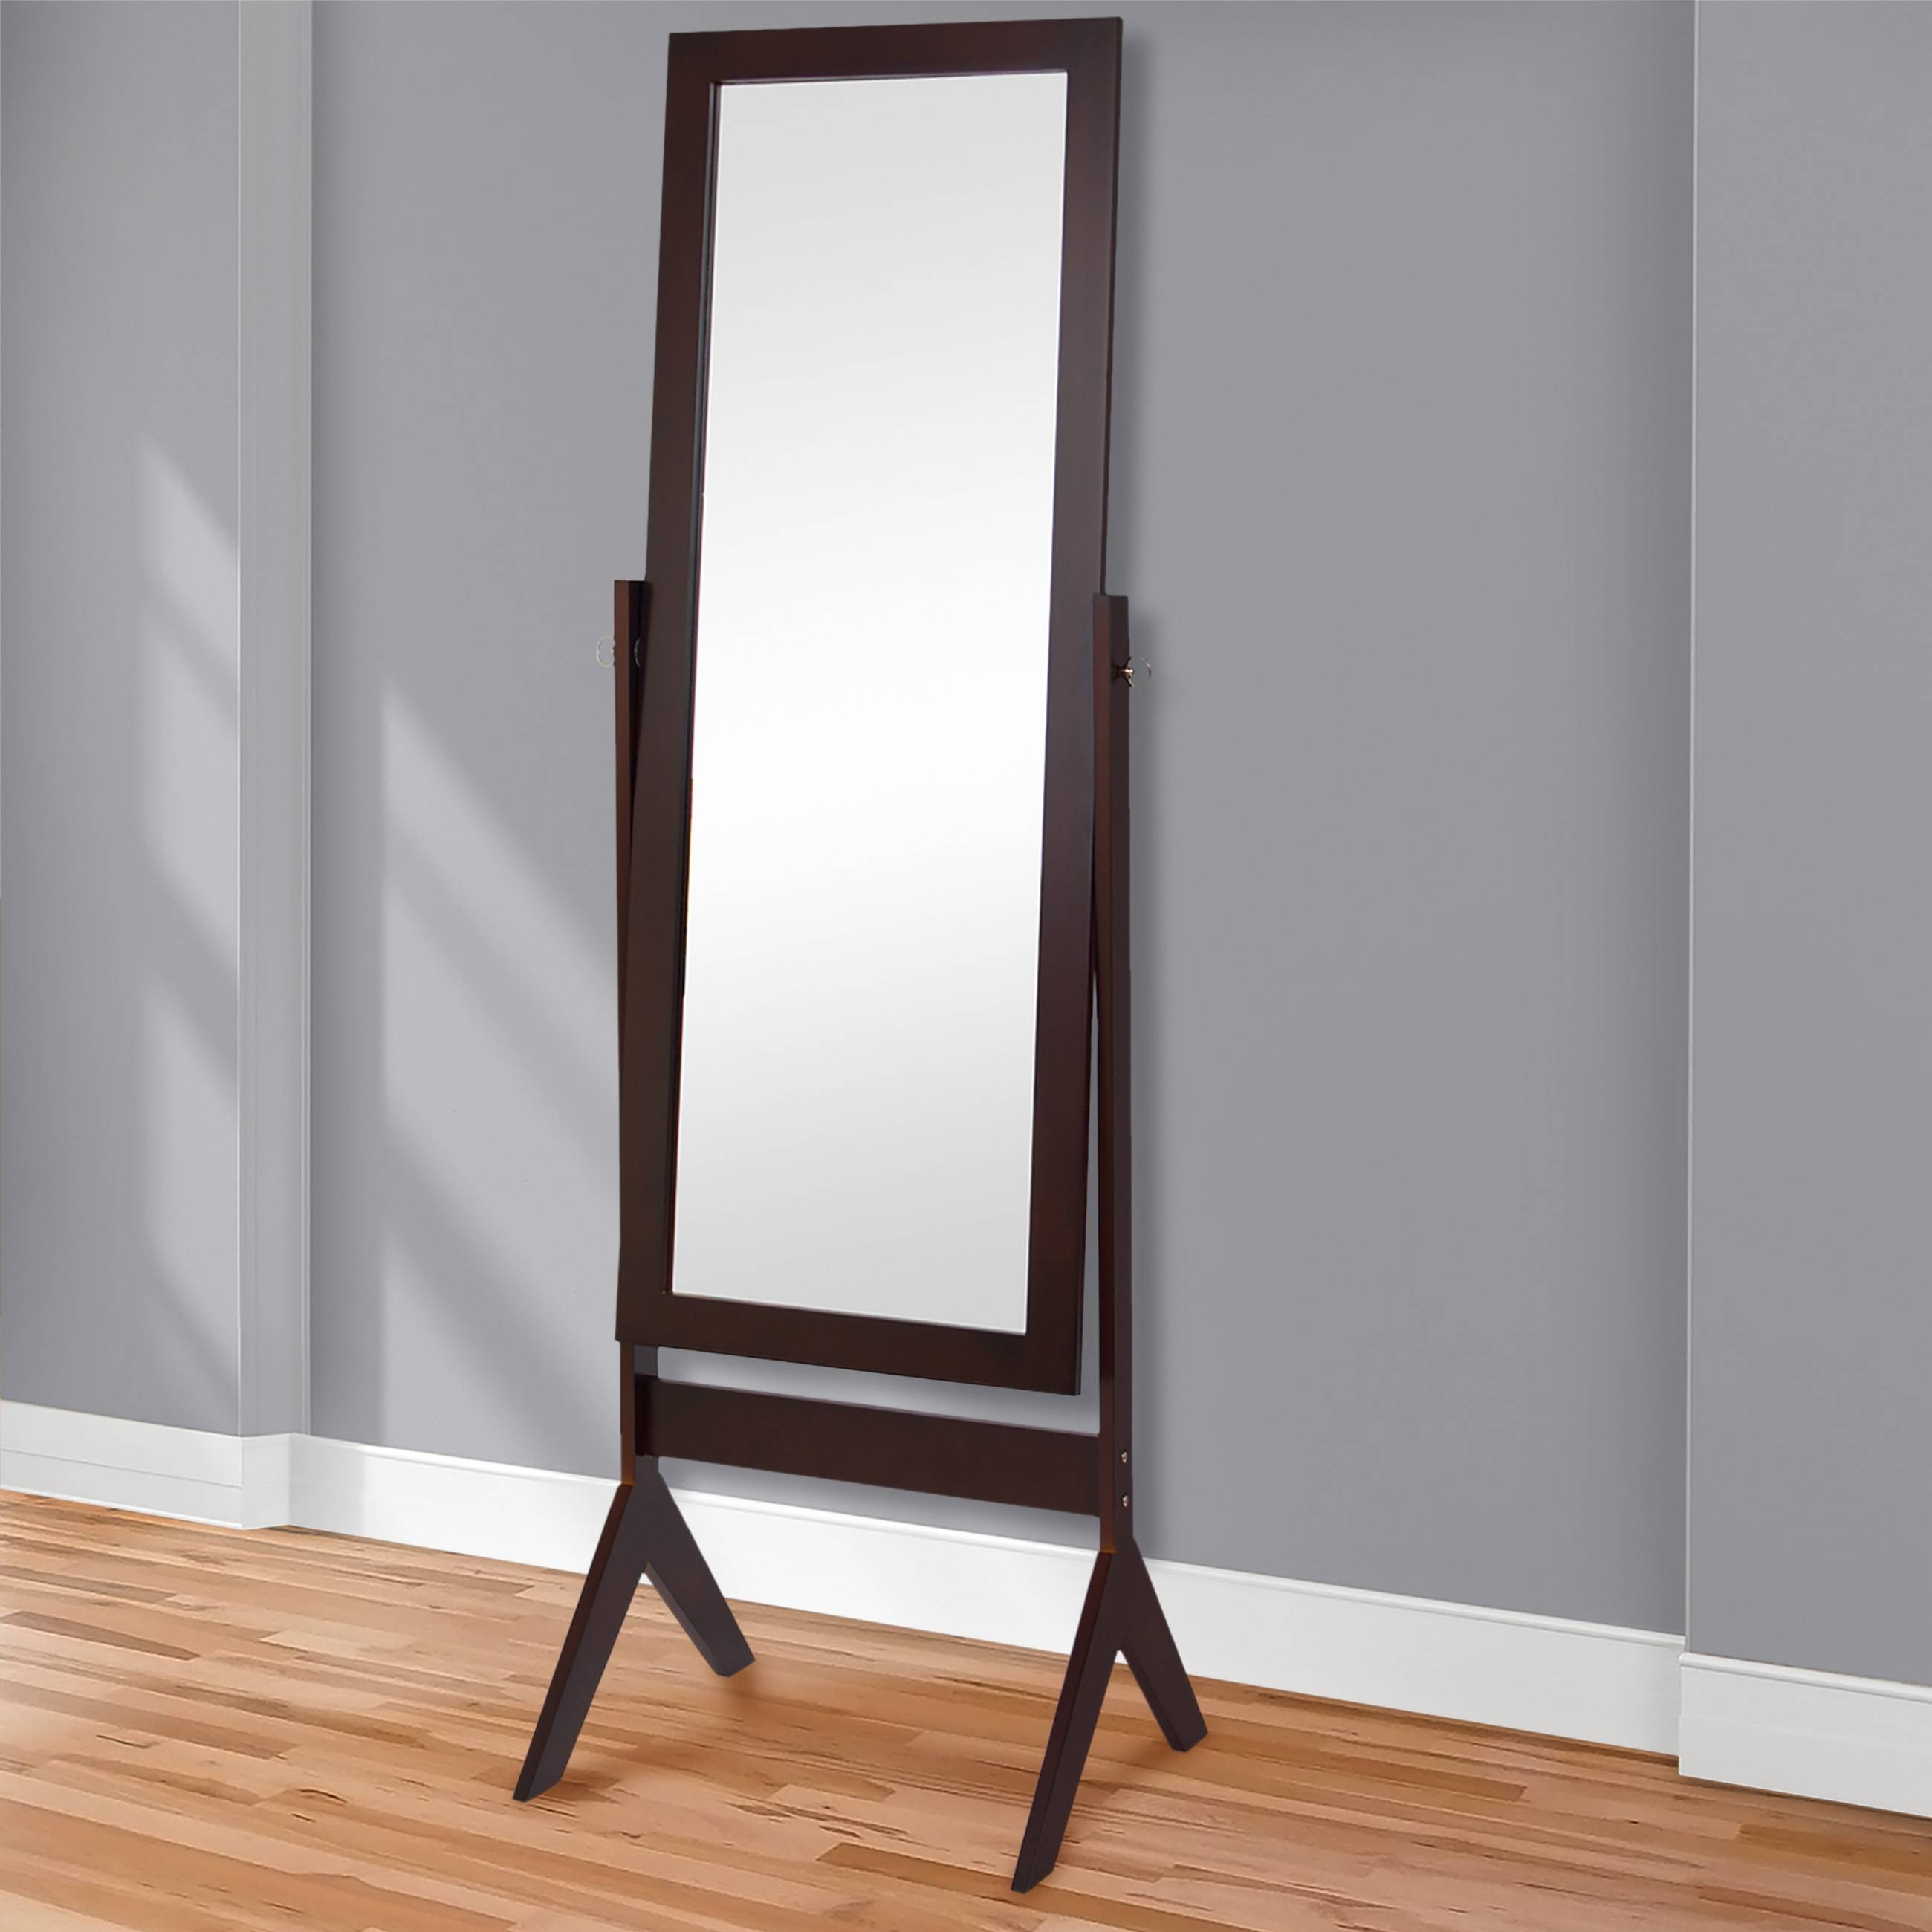 Mirror : Decorative Cheval Mirror Awesome Cream Cheval Mirror with regard to Cream Cheval Mirrors (Image 12 of 15)